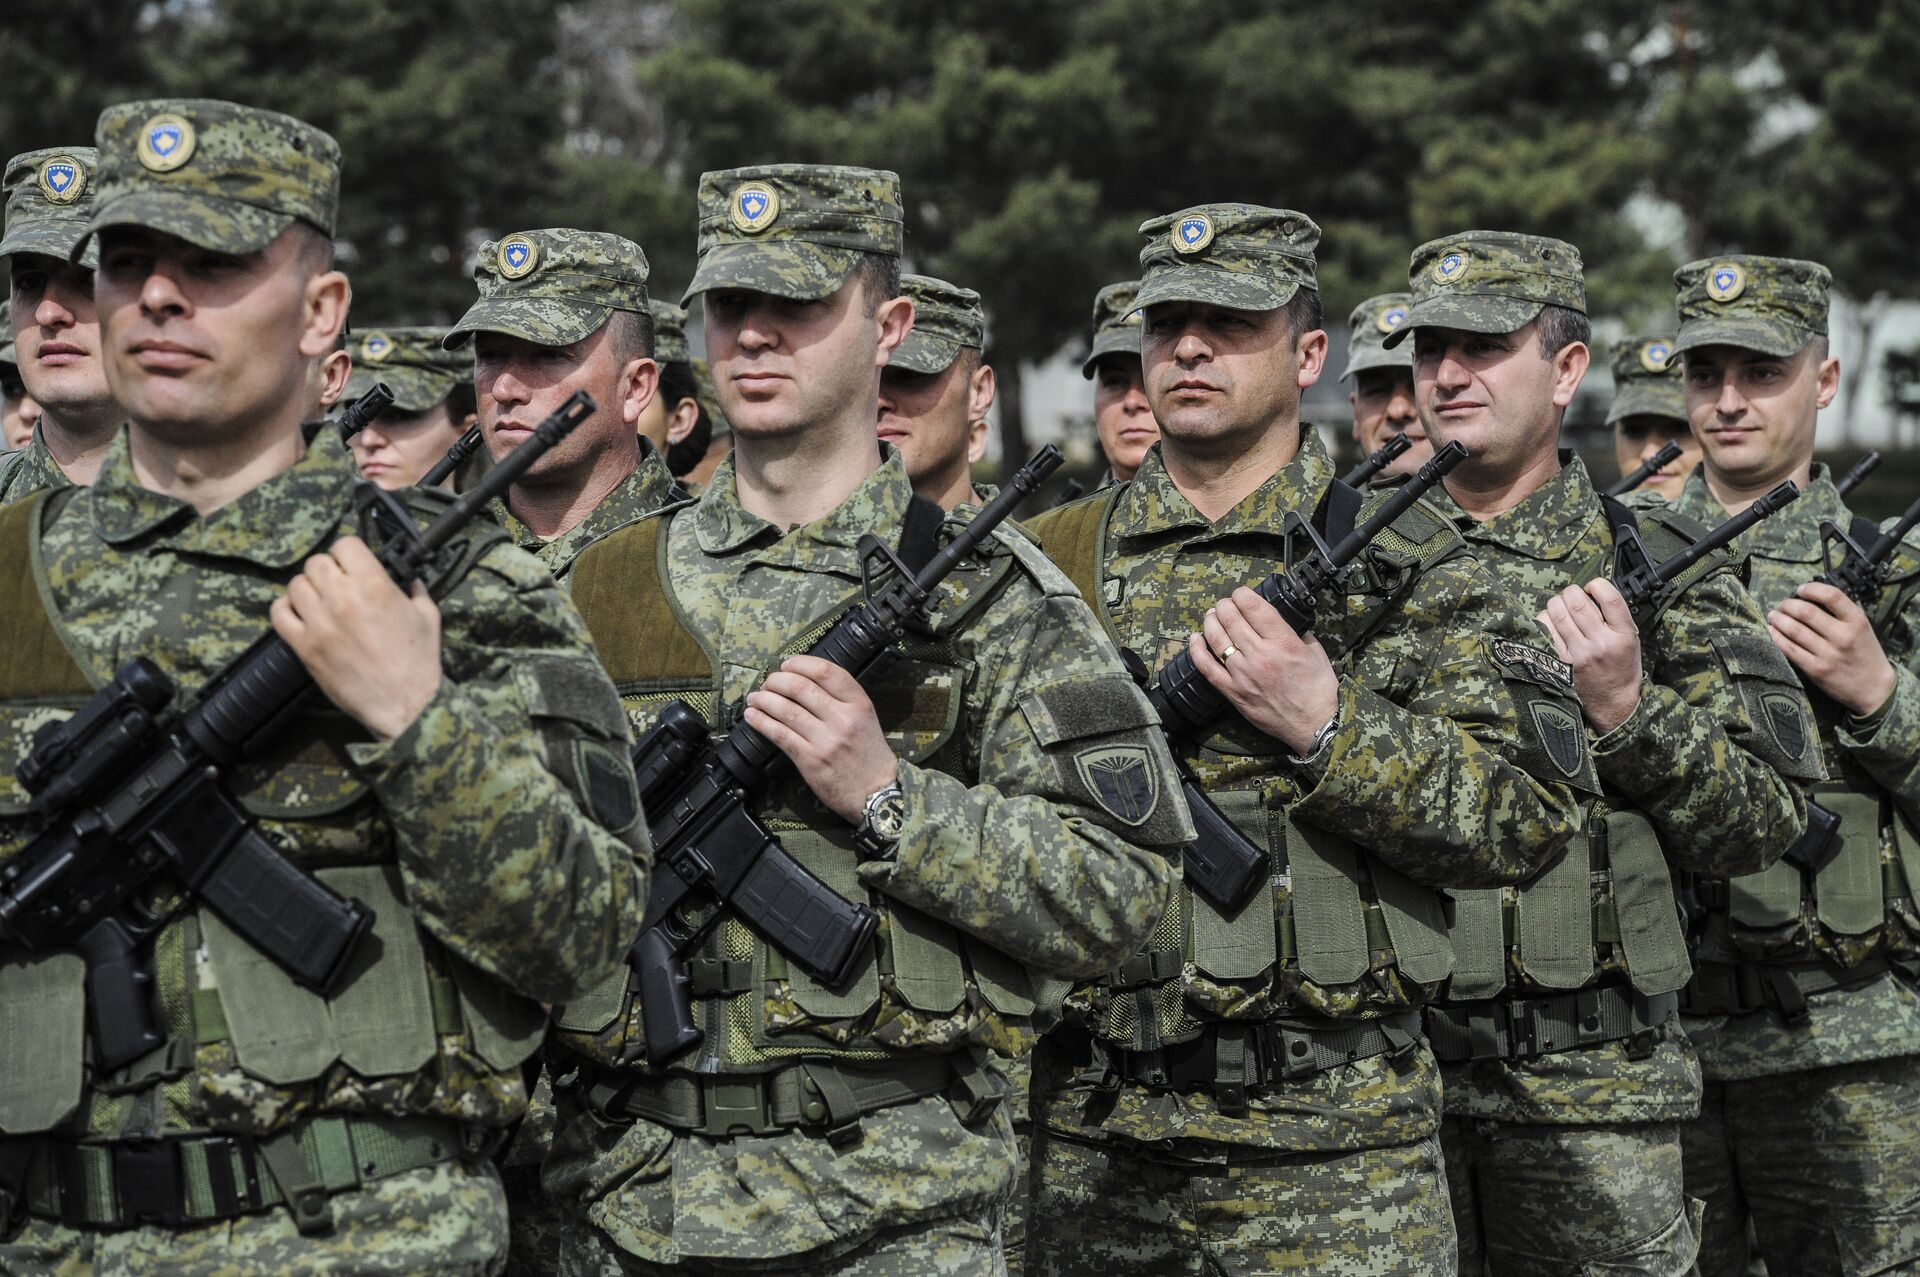 Members of Kosovo Security Force (KSF) attend a ceremony marking the 19th anniversary of Kosovo Liberation Army (KLA) Commander Adem Jashari death, in capital Pristina, Kosovo in this photo taken on Sunday, March 5, 2017 - Sputnik International, 1920, 15.09.2021